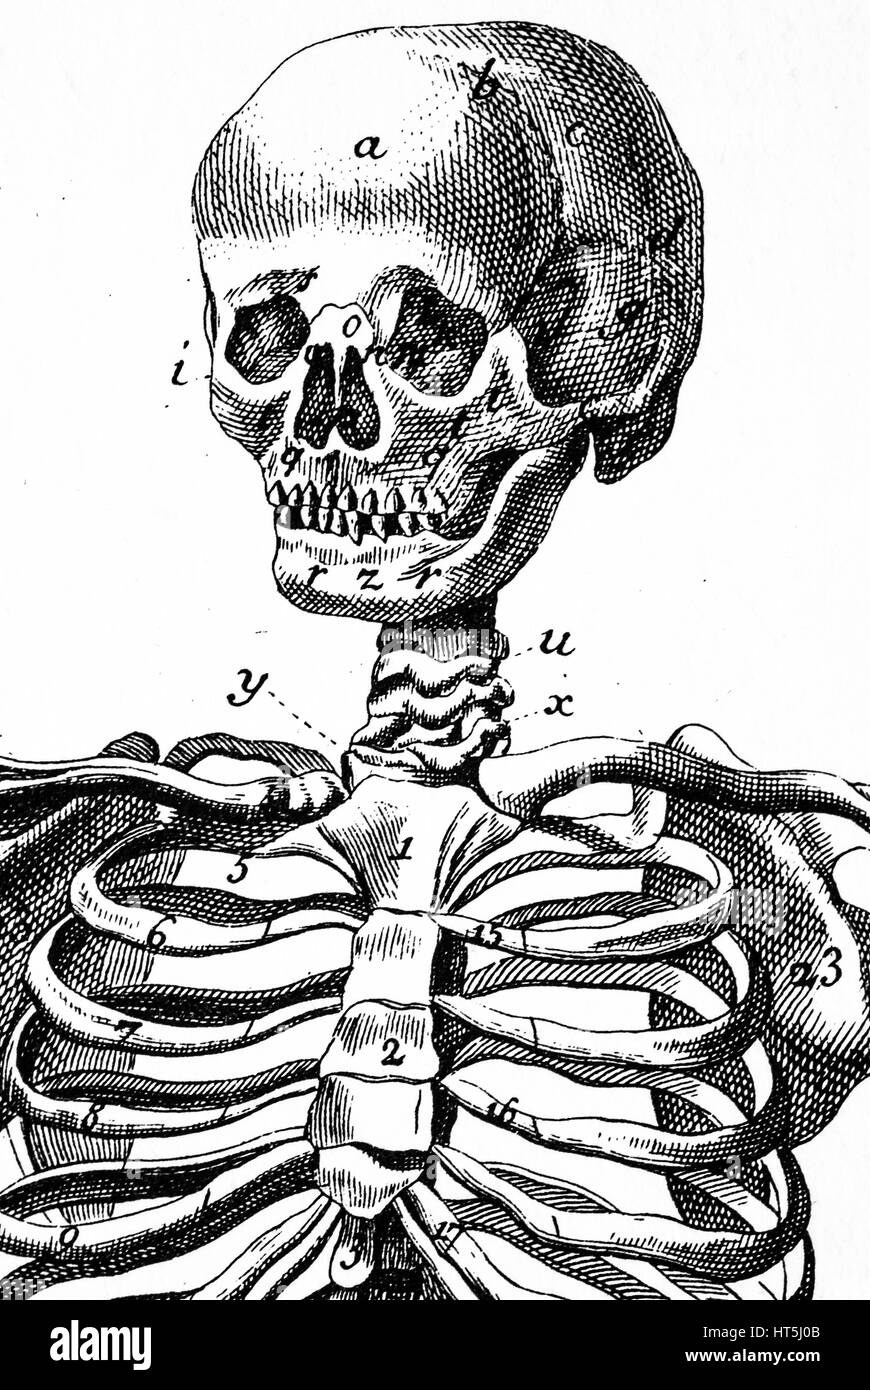 0beac09e9afec Skull Etching Stock Photos & Skull Etching Stock Images - Alamy